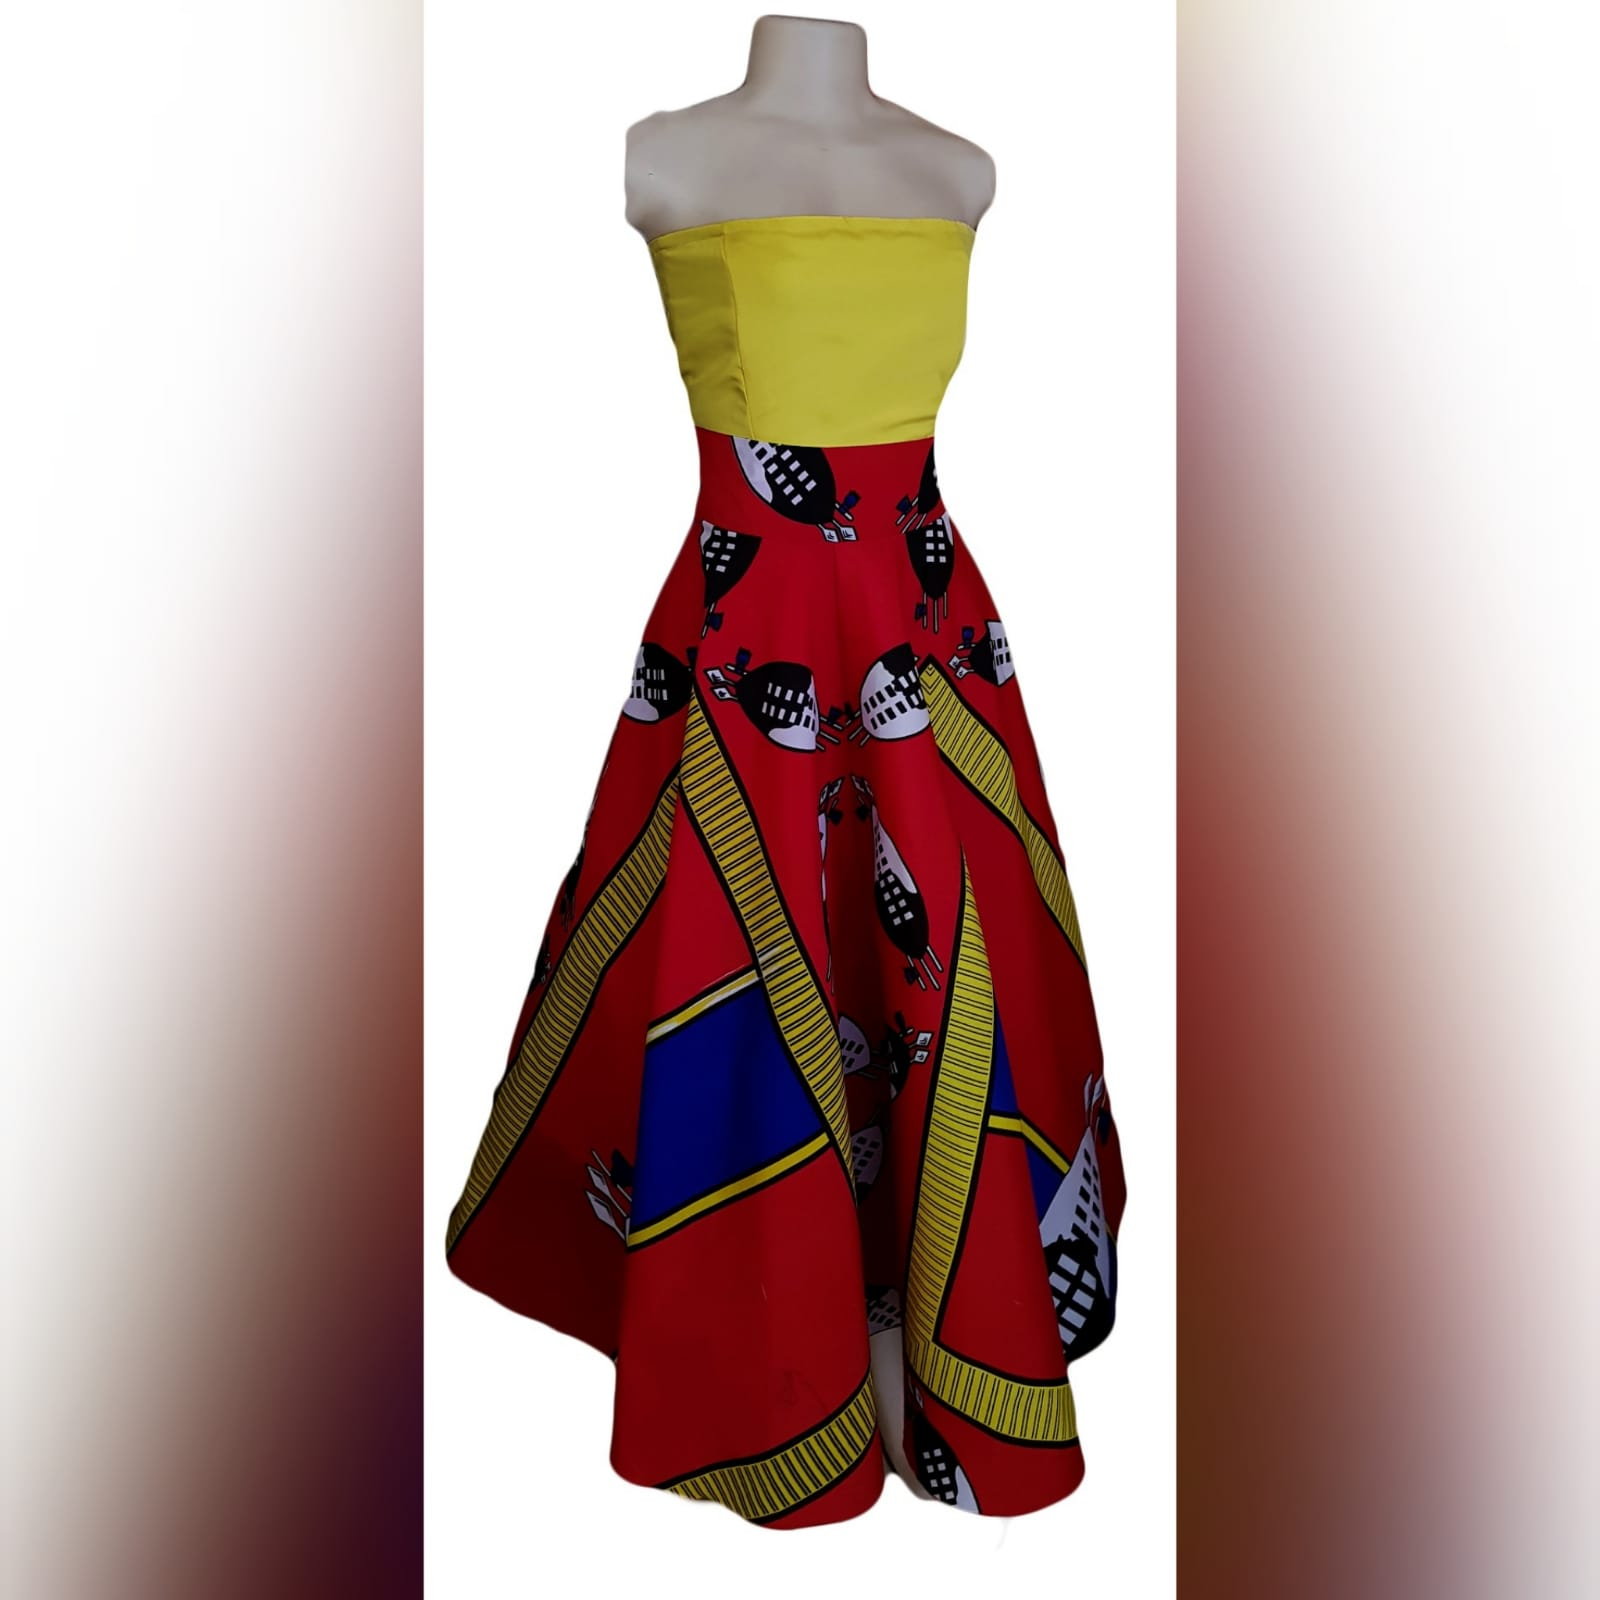 African traditional 2 piece outfit skirt and top 6 african traditional 2 piece outfit skirt and top. Red swati wide skirt with a high waisted effect. Boobtube yellow satin top with a lace-up back